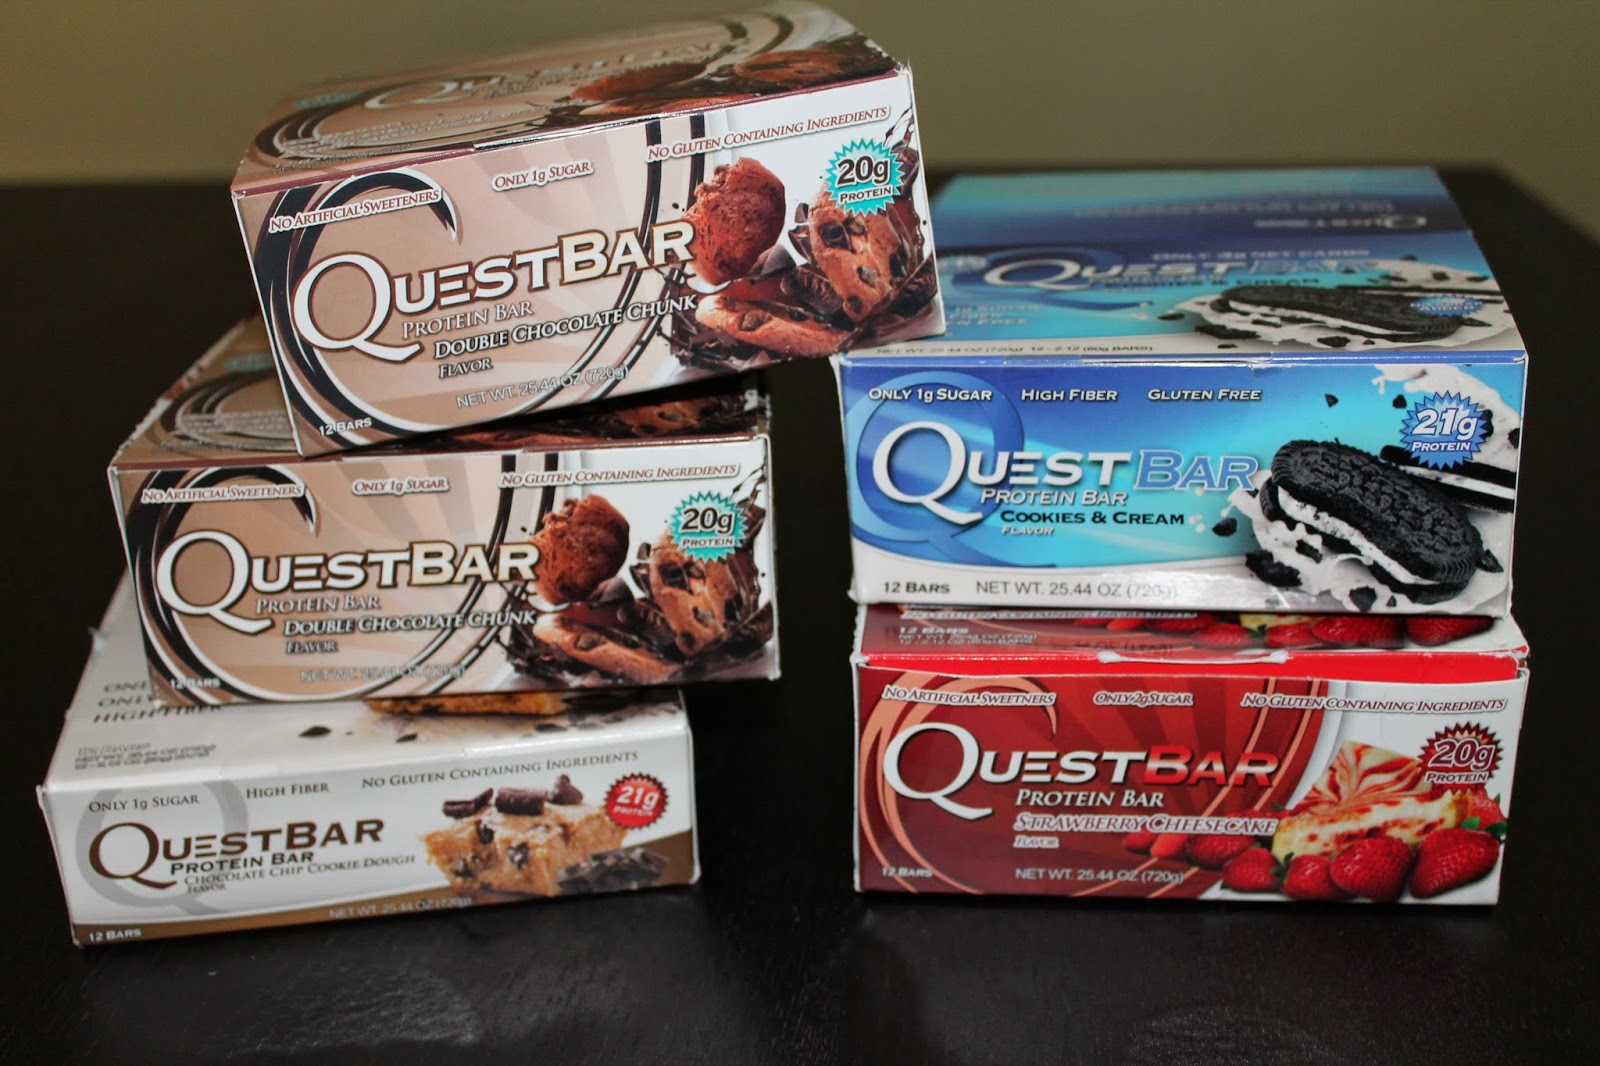 How much are quest bars